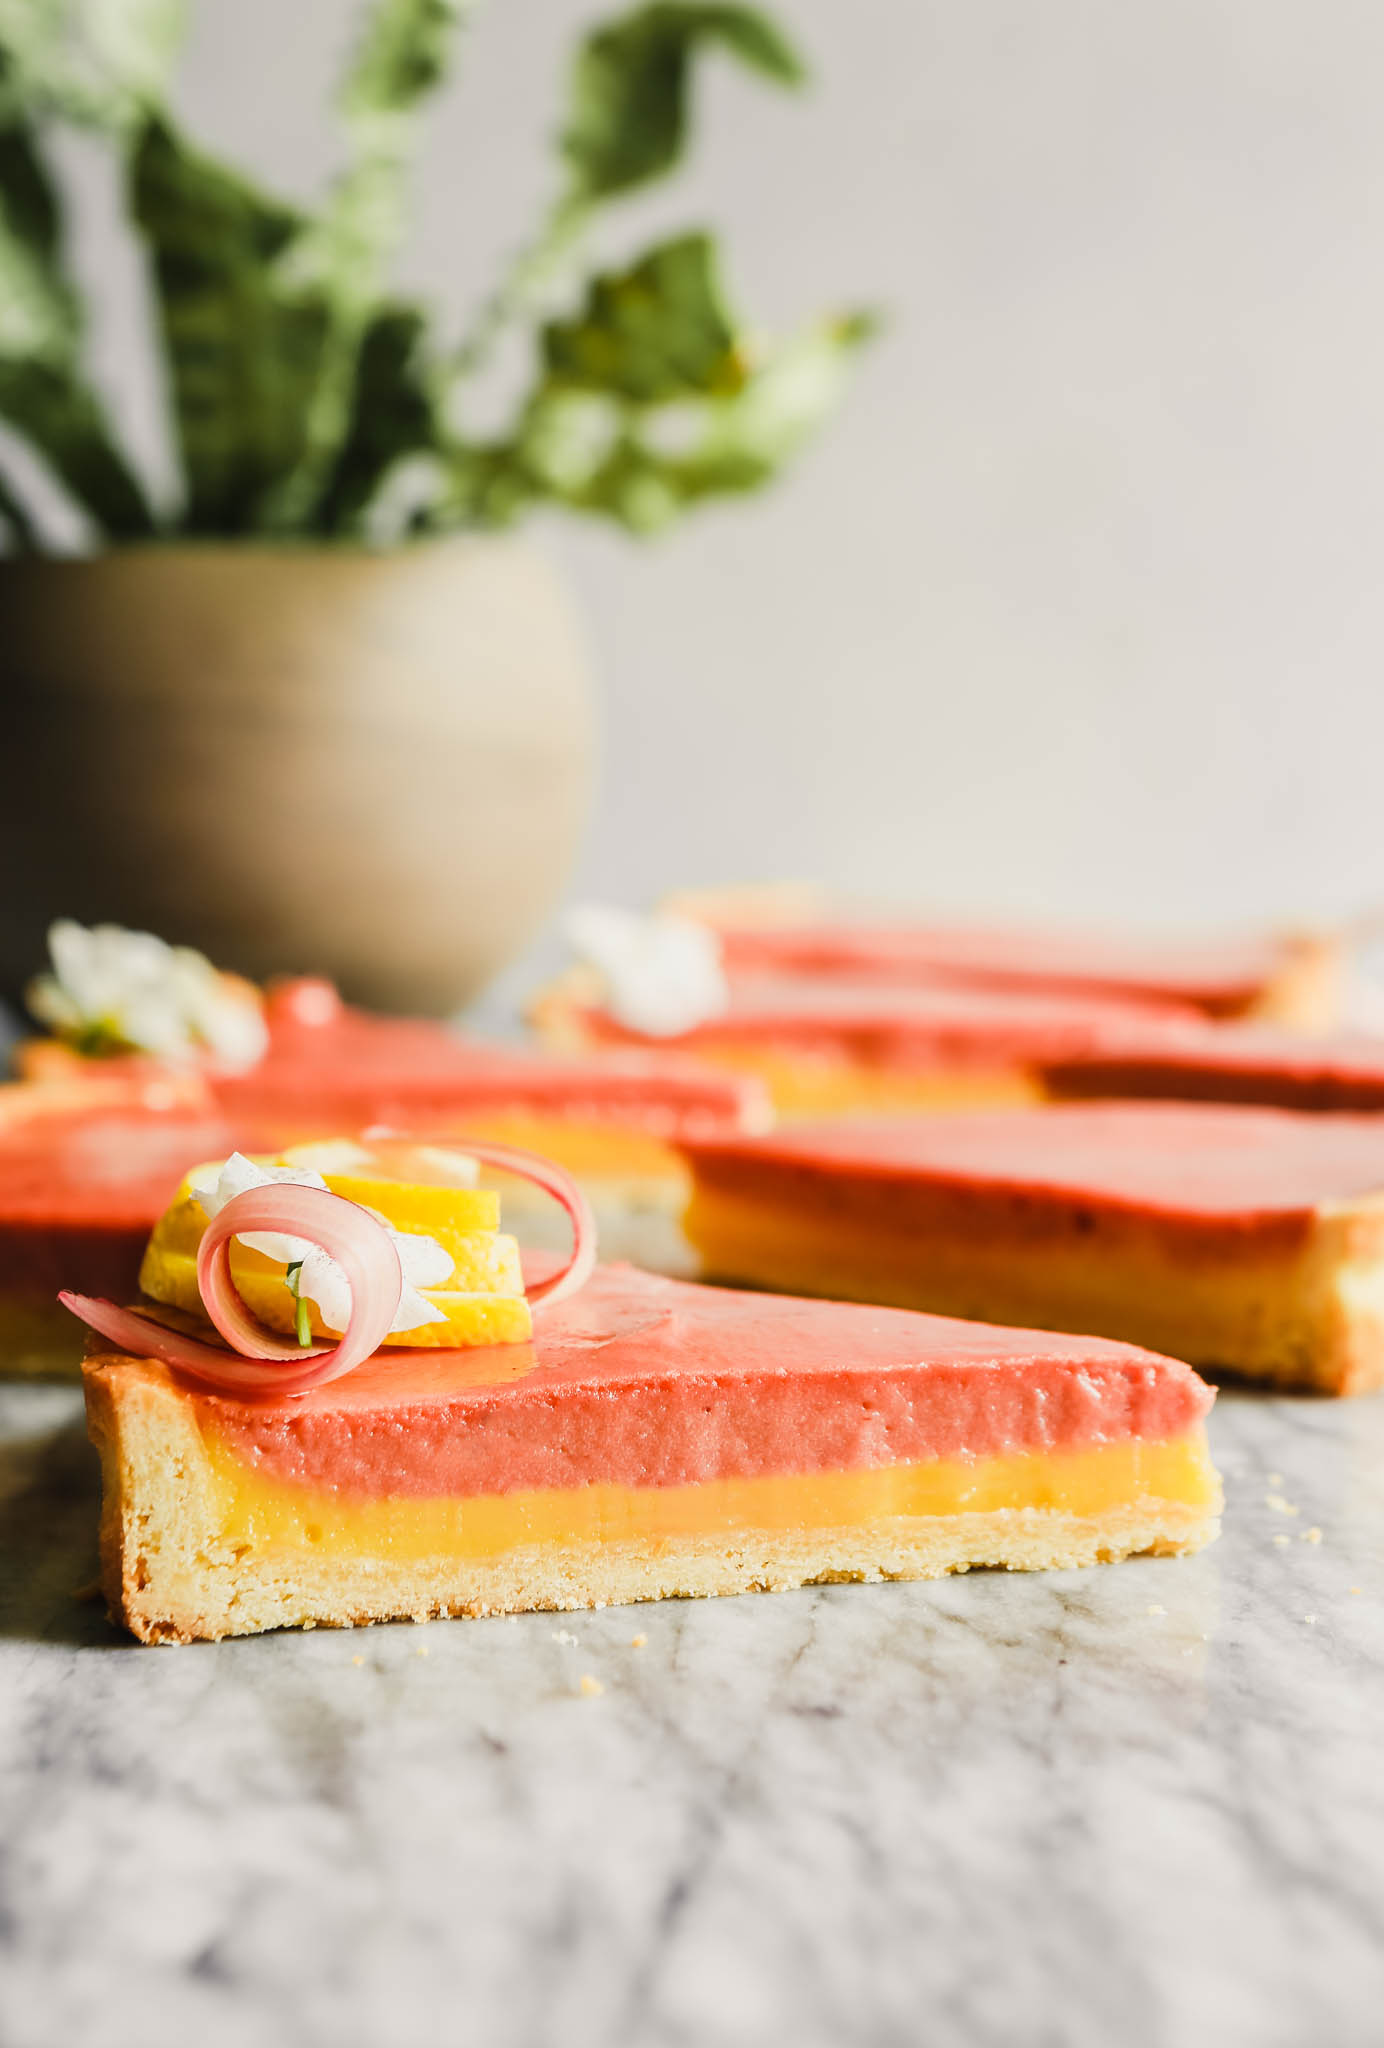 side angle photograph of wedges of layered rhubarb tart set on a marble table.